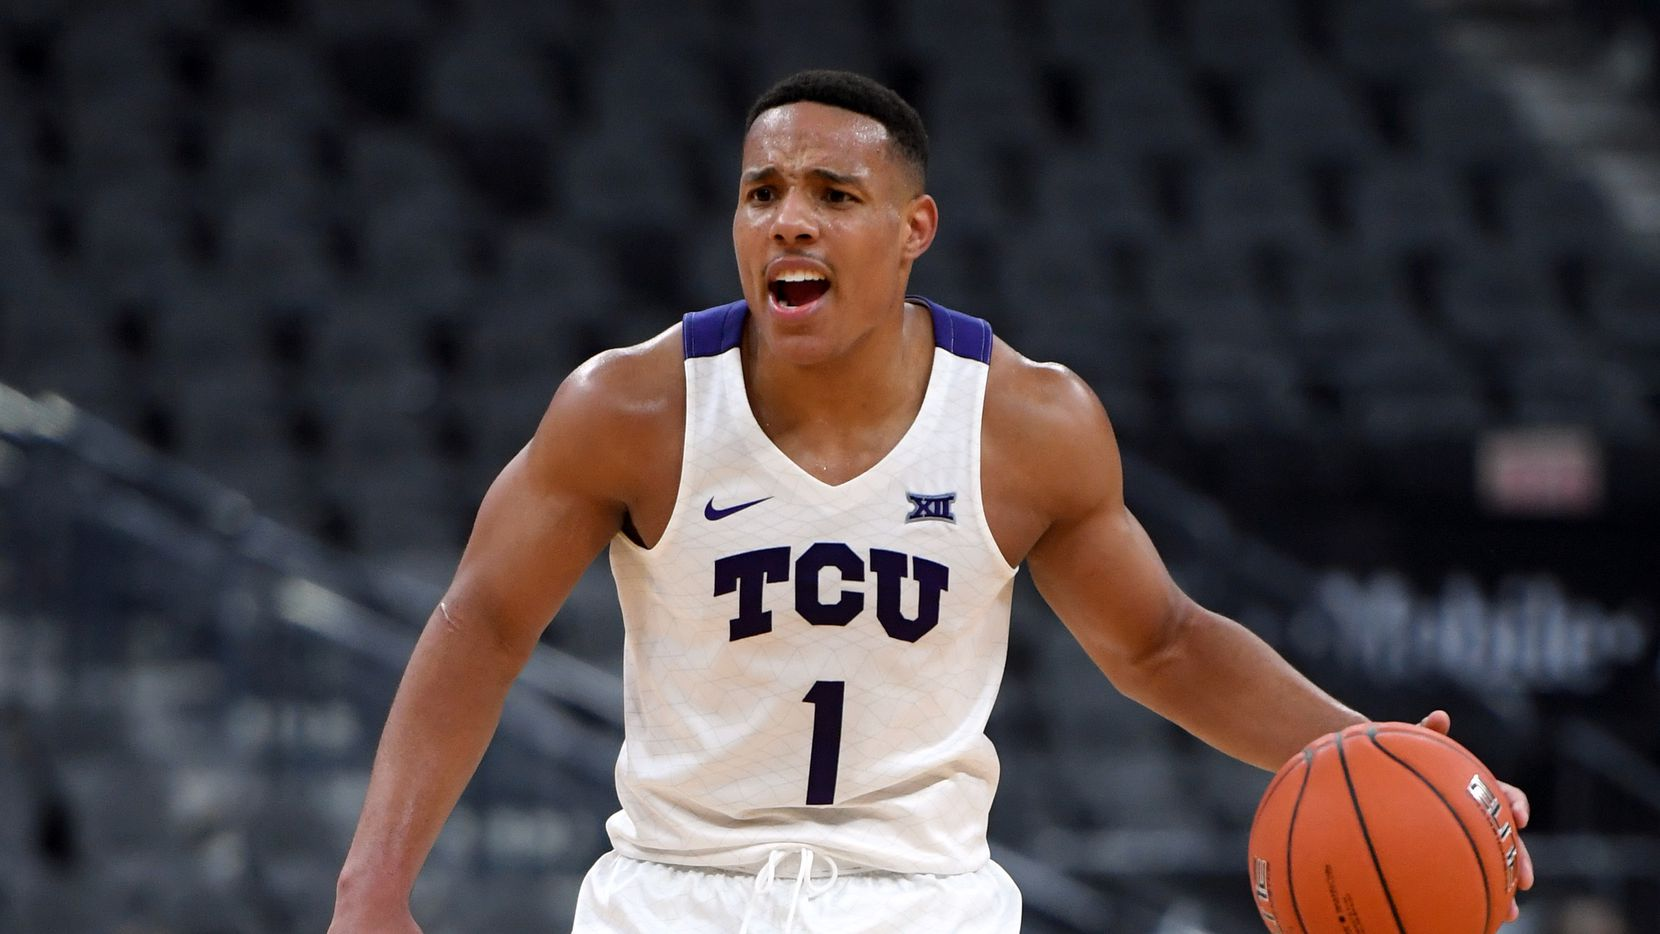 LAS VEGAS, NEVADA - NOVEMBER 24:  Desmond Bane #1 of the TCU Horned Frogs brings the ball up the court against the Clemson Tigers during the MGM Resorts Main Event basketball tournament at T-Mobile Arena on November 24, 2019 in Las Vegas, Nevada. The Tigers defeated the Horned Frogs 62-60 in overtime.